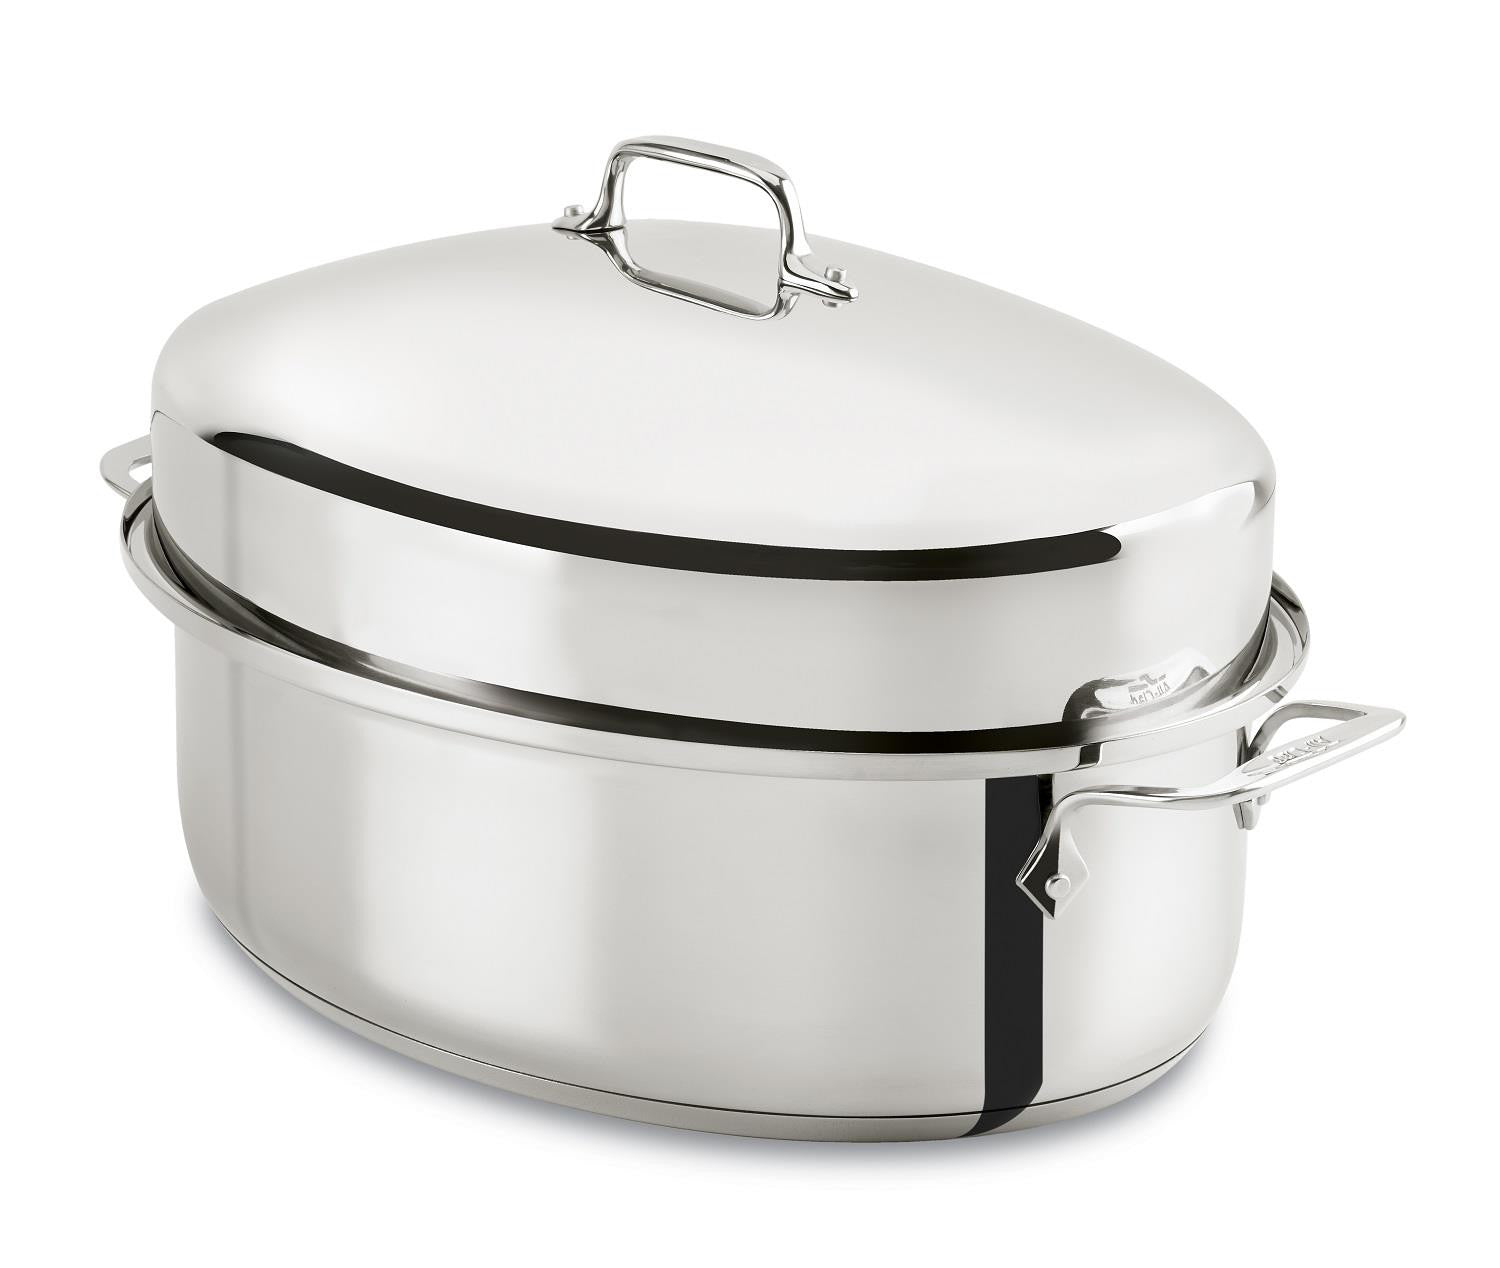 all-clad oval roaster with lid, 10qt